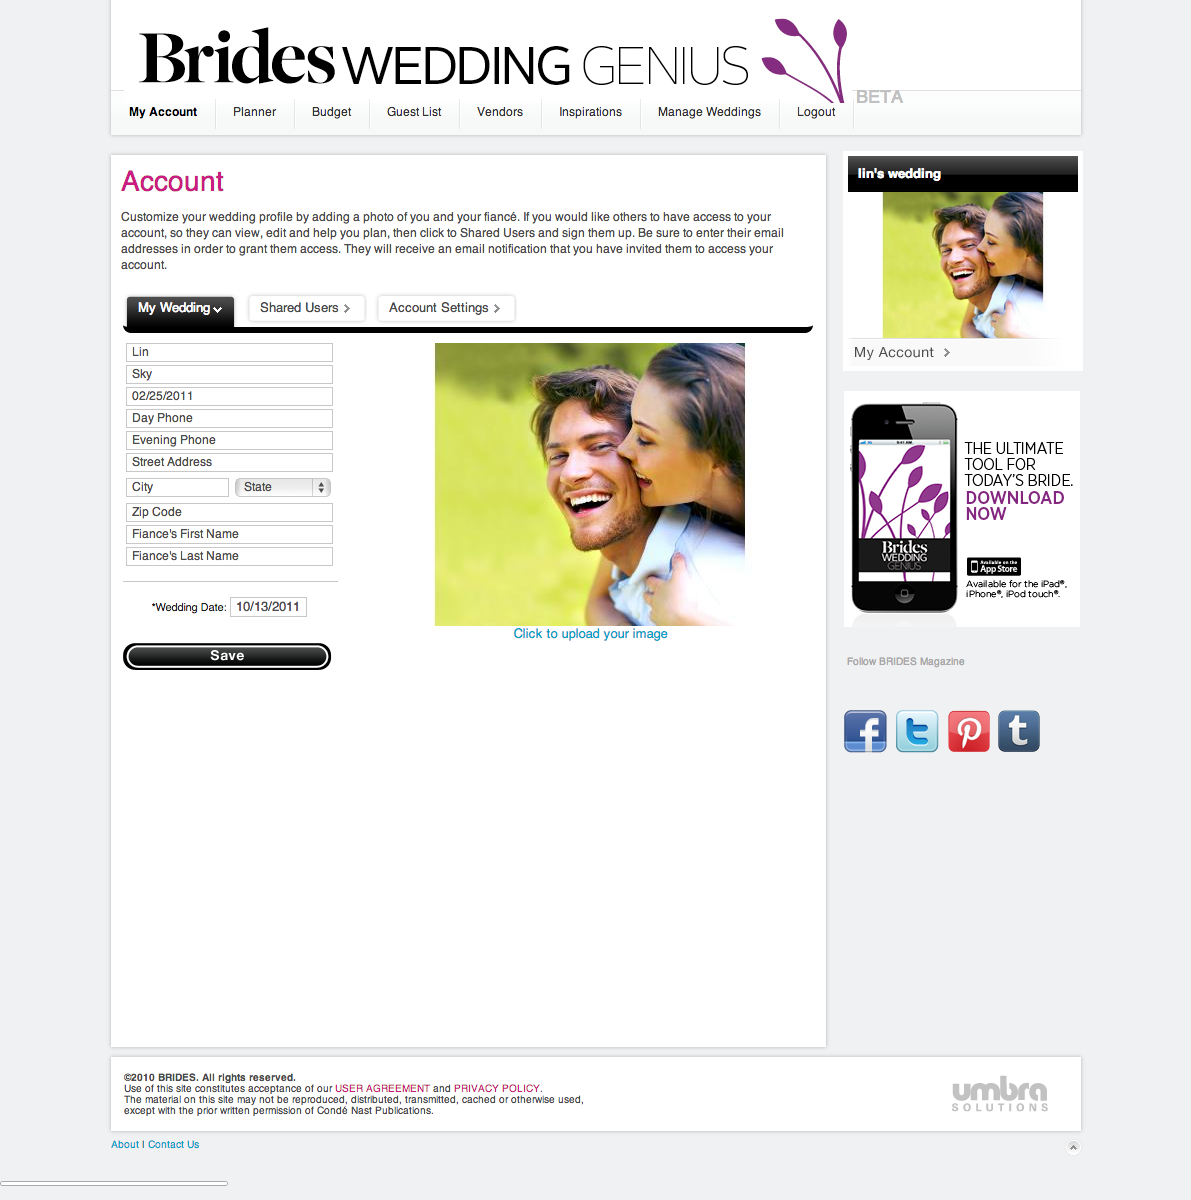 Brides+Wedding+Genius+-+My+Account2